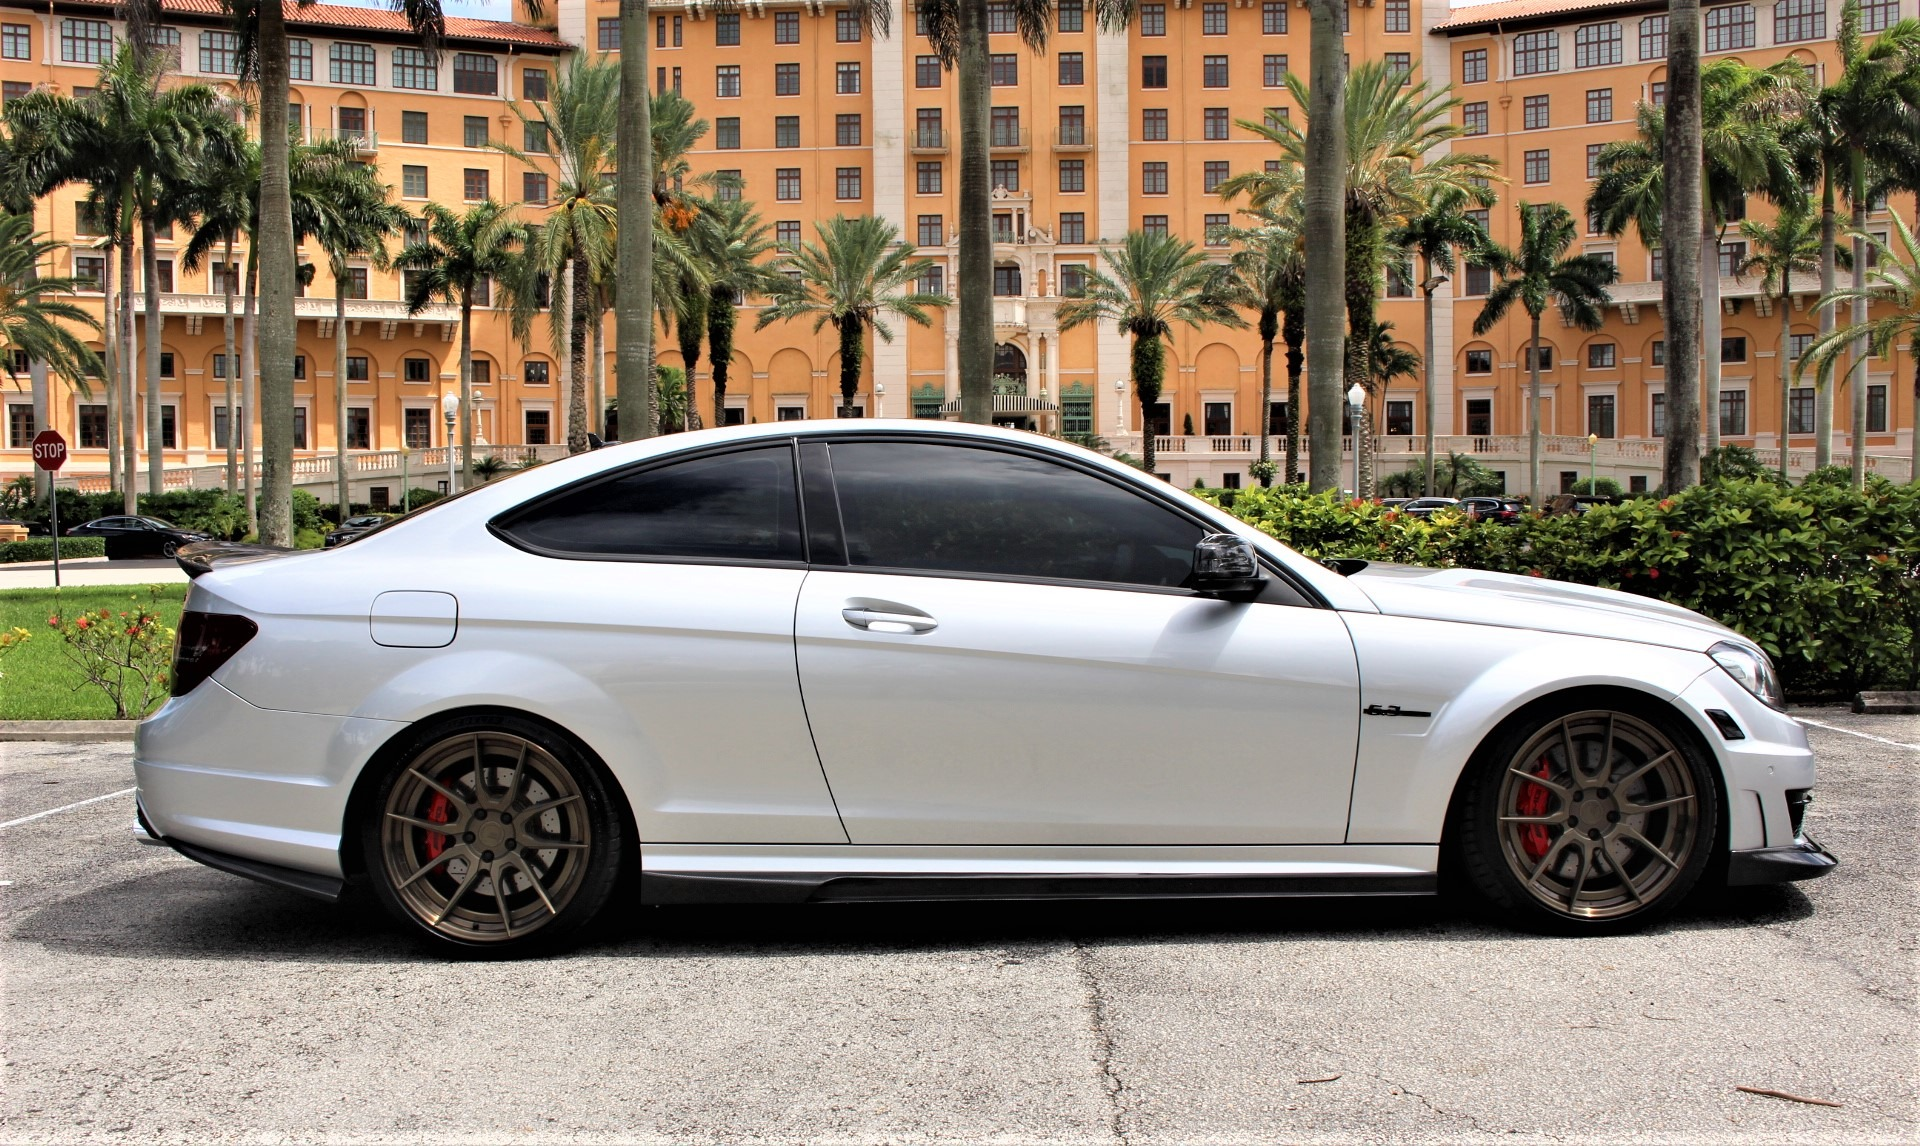 Used 2015 Mercedes-Benz C-Class C 63 AMG 507 Edition for sale Sold at The Gables Sports Cars in Miami FL 33146 2